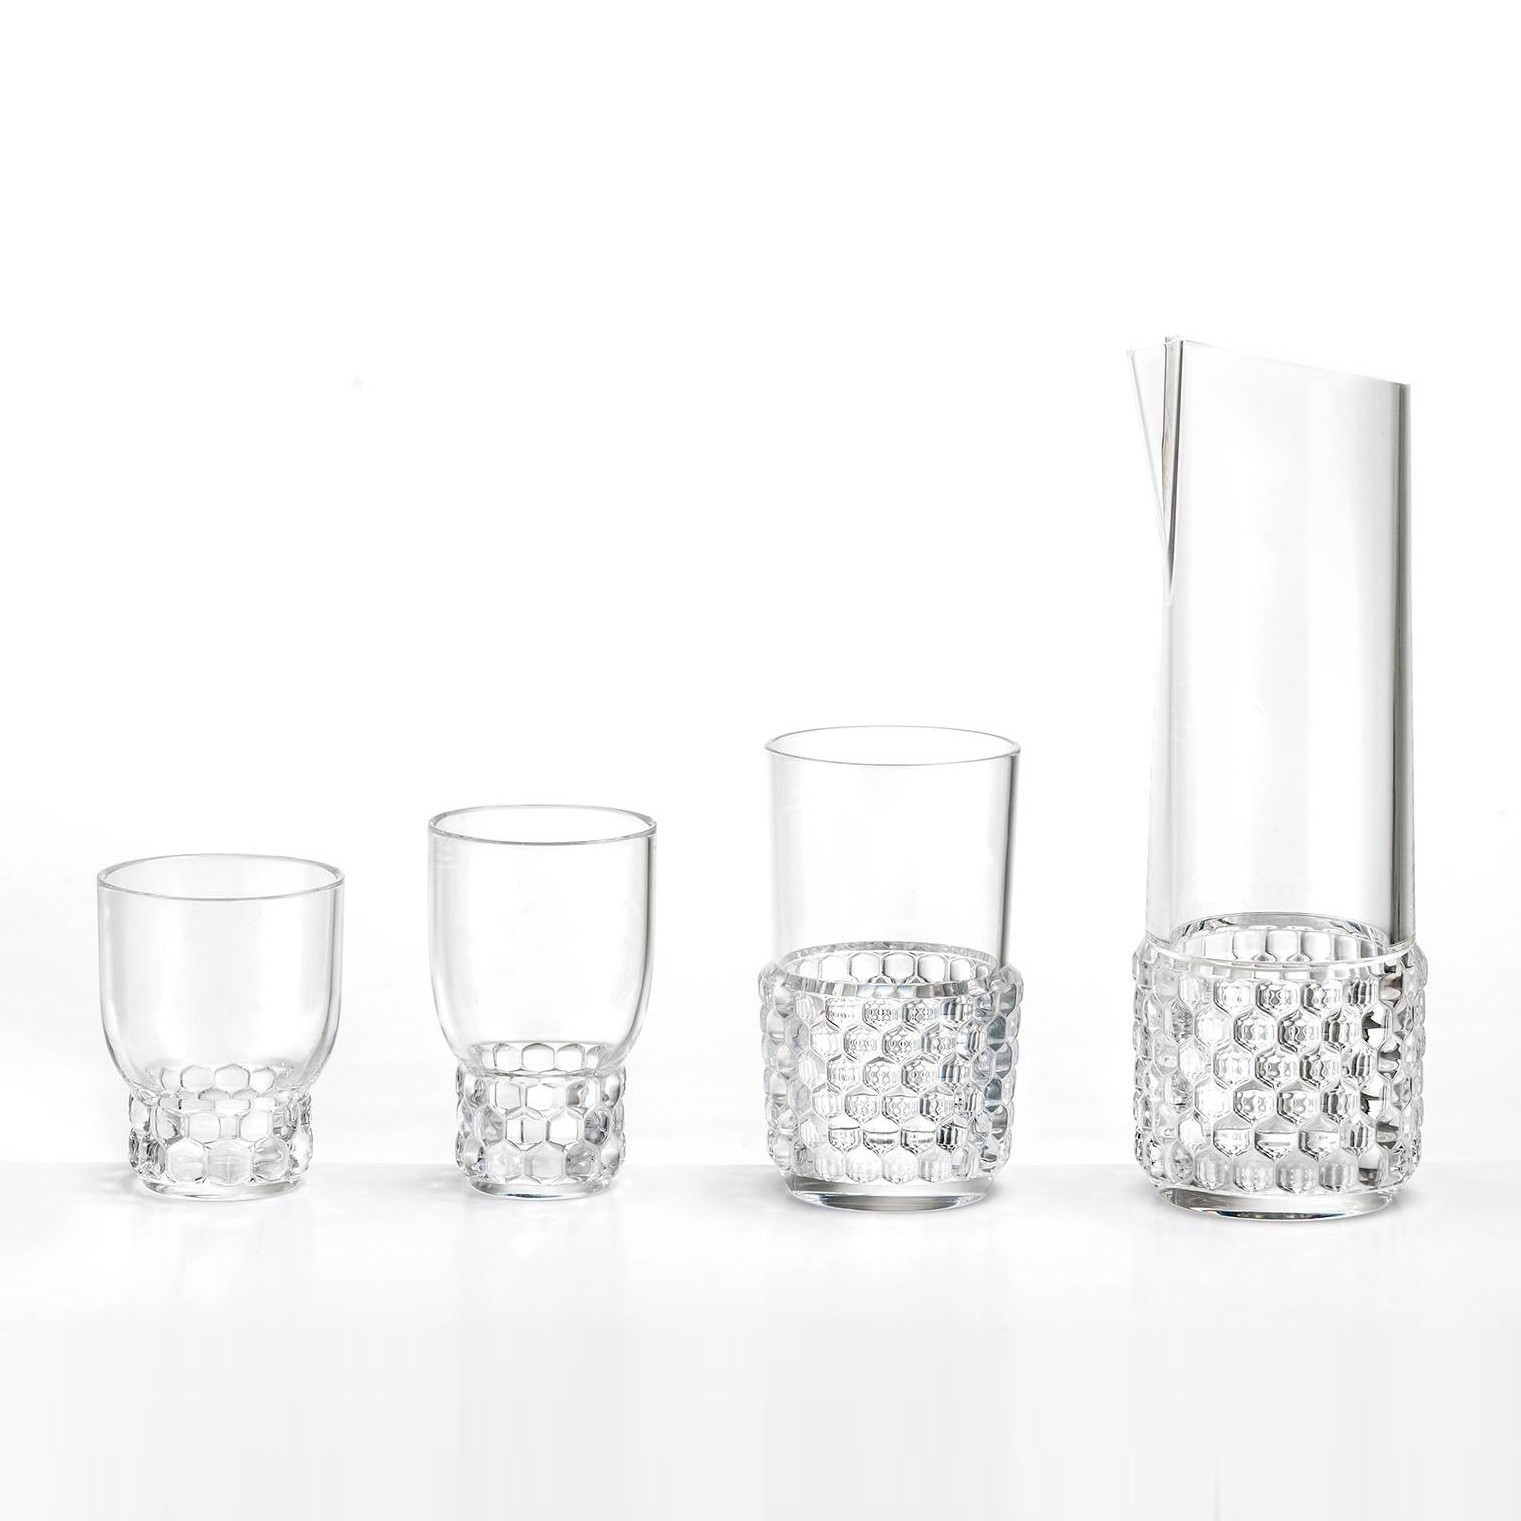 Weingläser Modern Kartell Jellies Family Wine Glass Set Of 4 | Ambientedirect